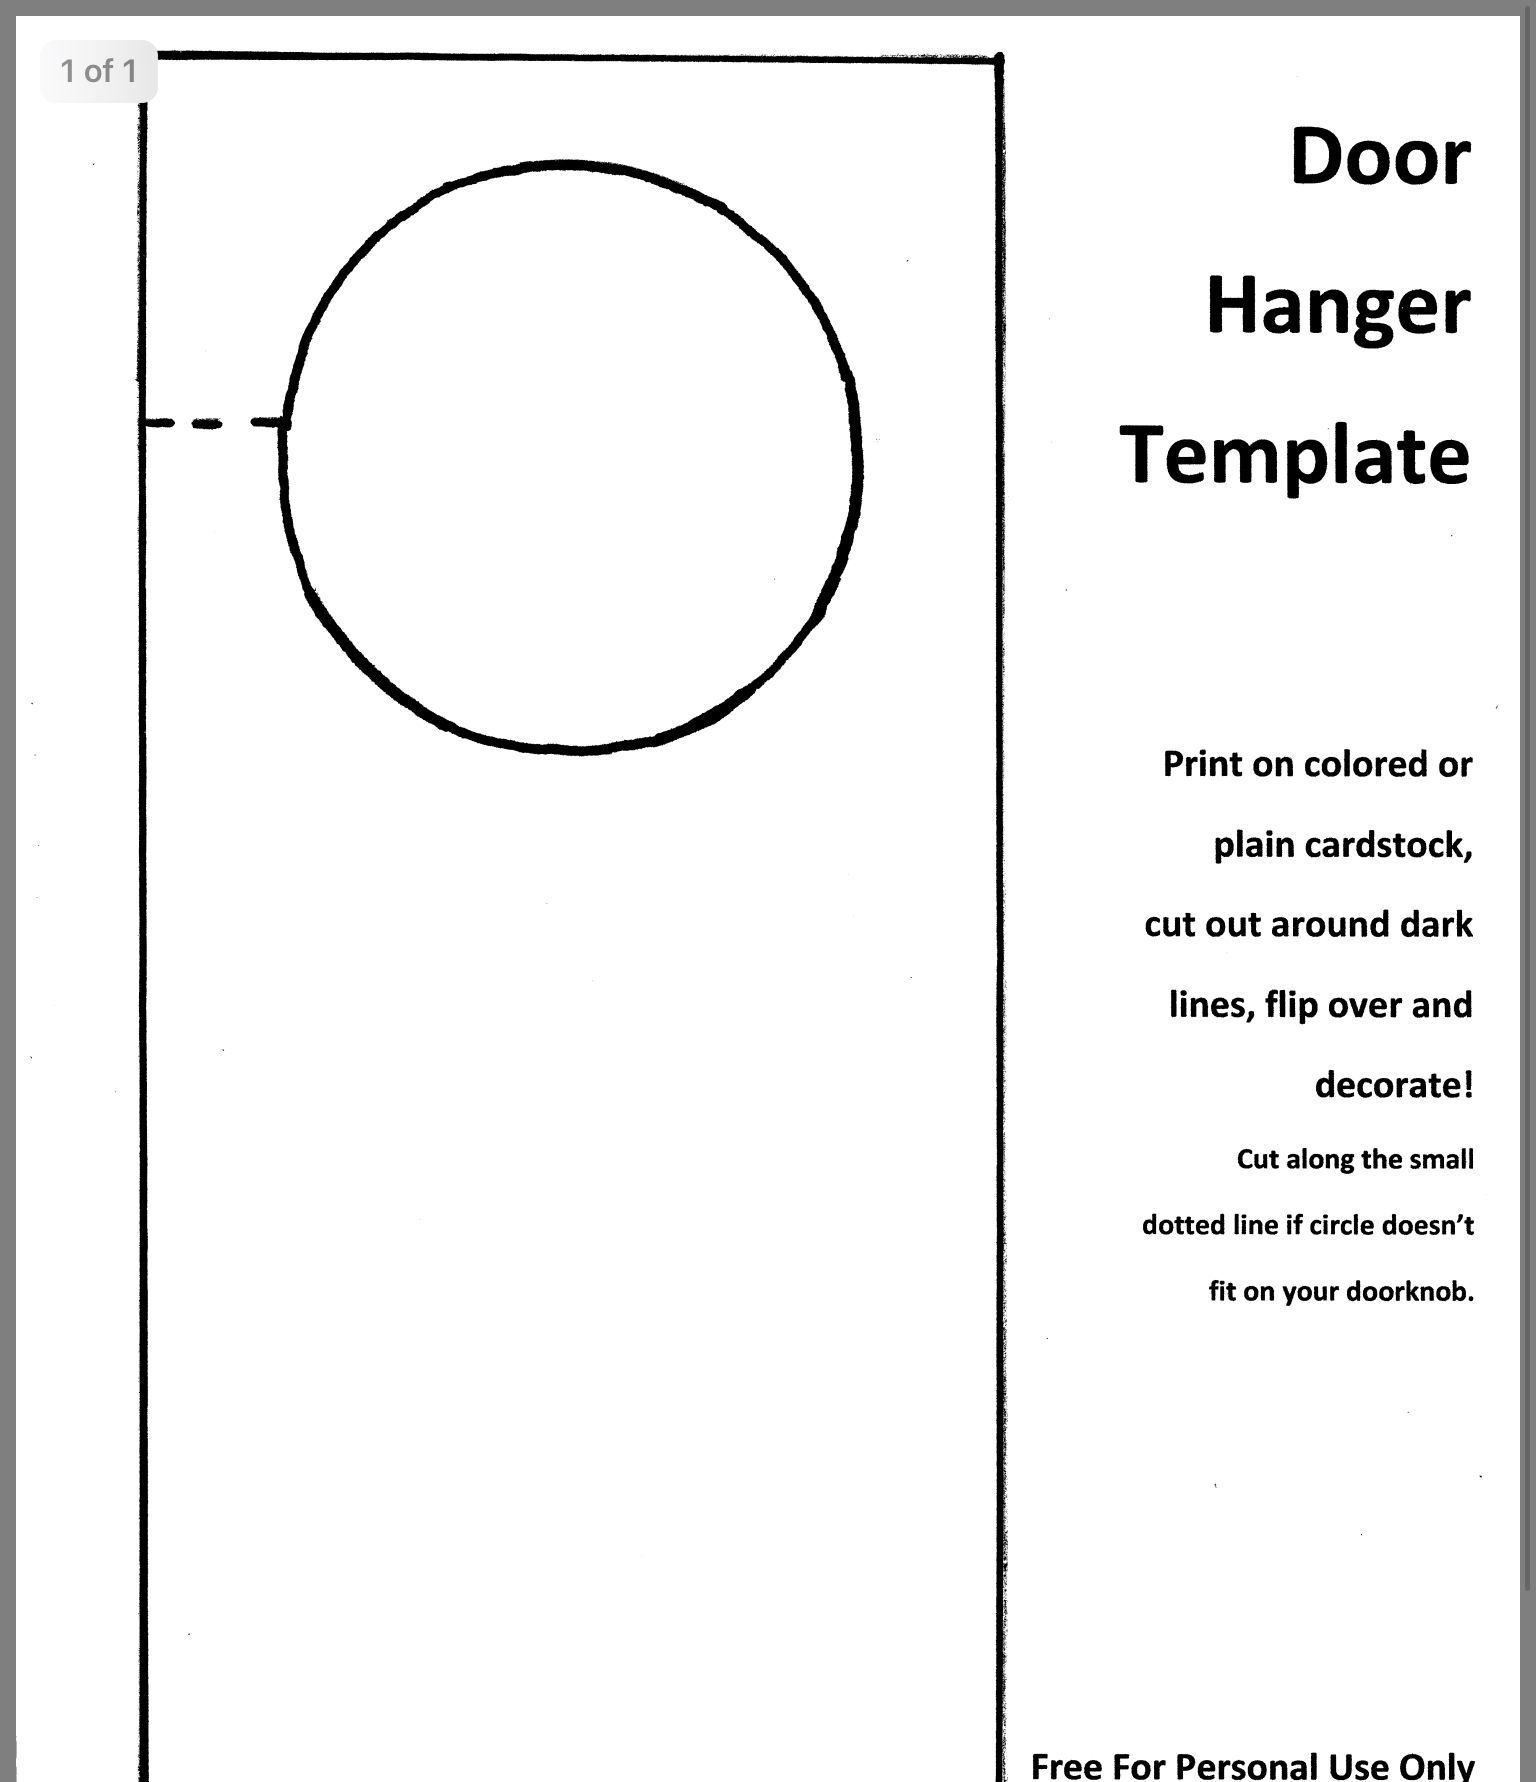 001 Magnificent Door Hanger Template Word Highest Clarity  Download Free Blank For MicrosoftFull